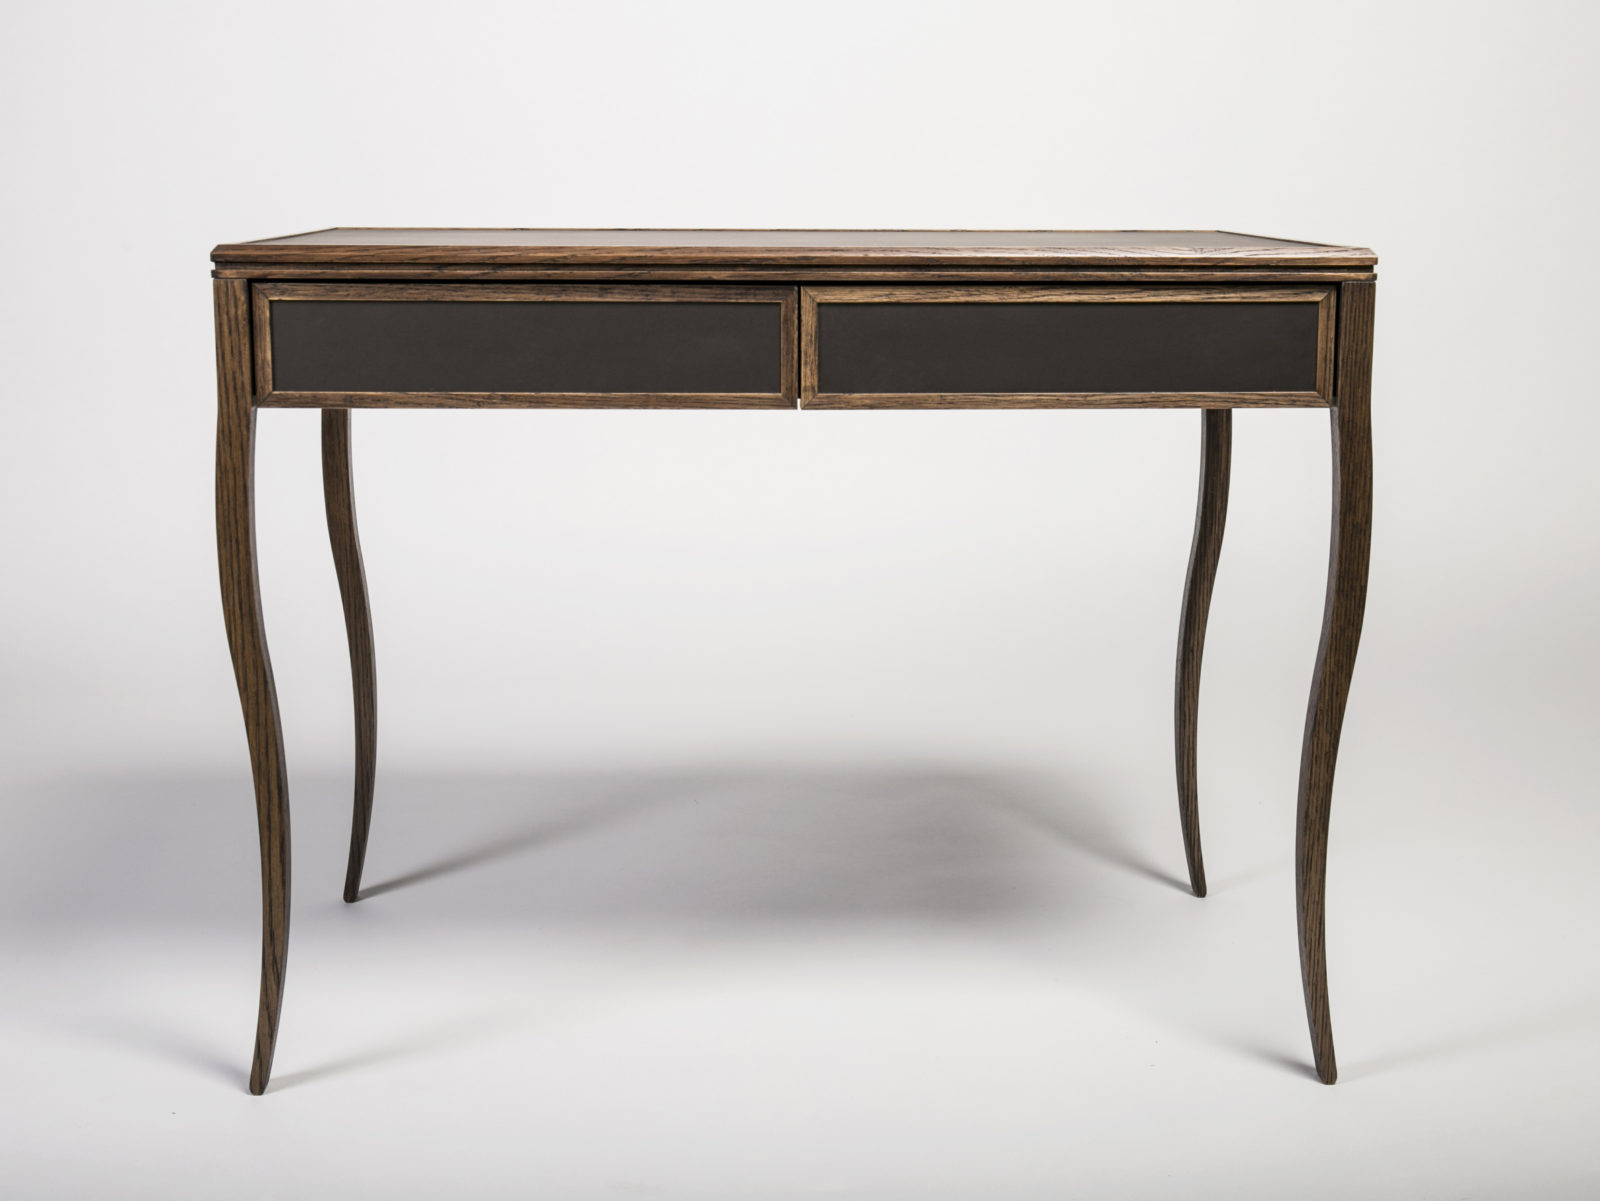 Stained solid oak desk with leather detail